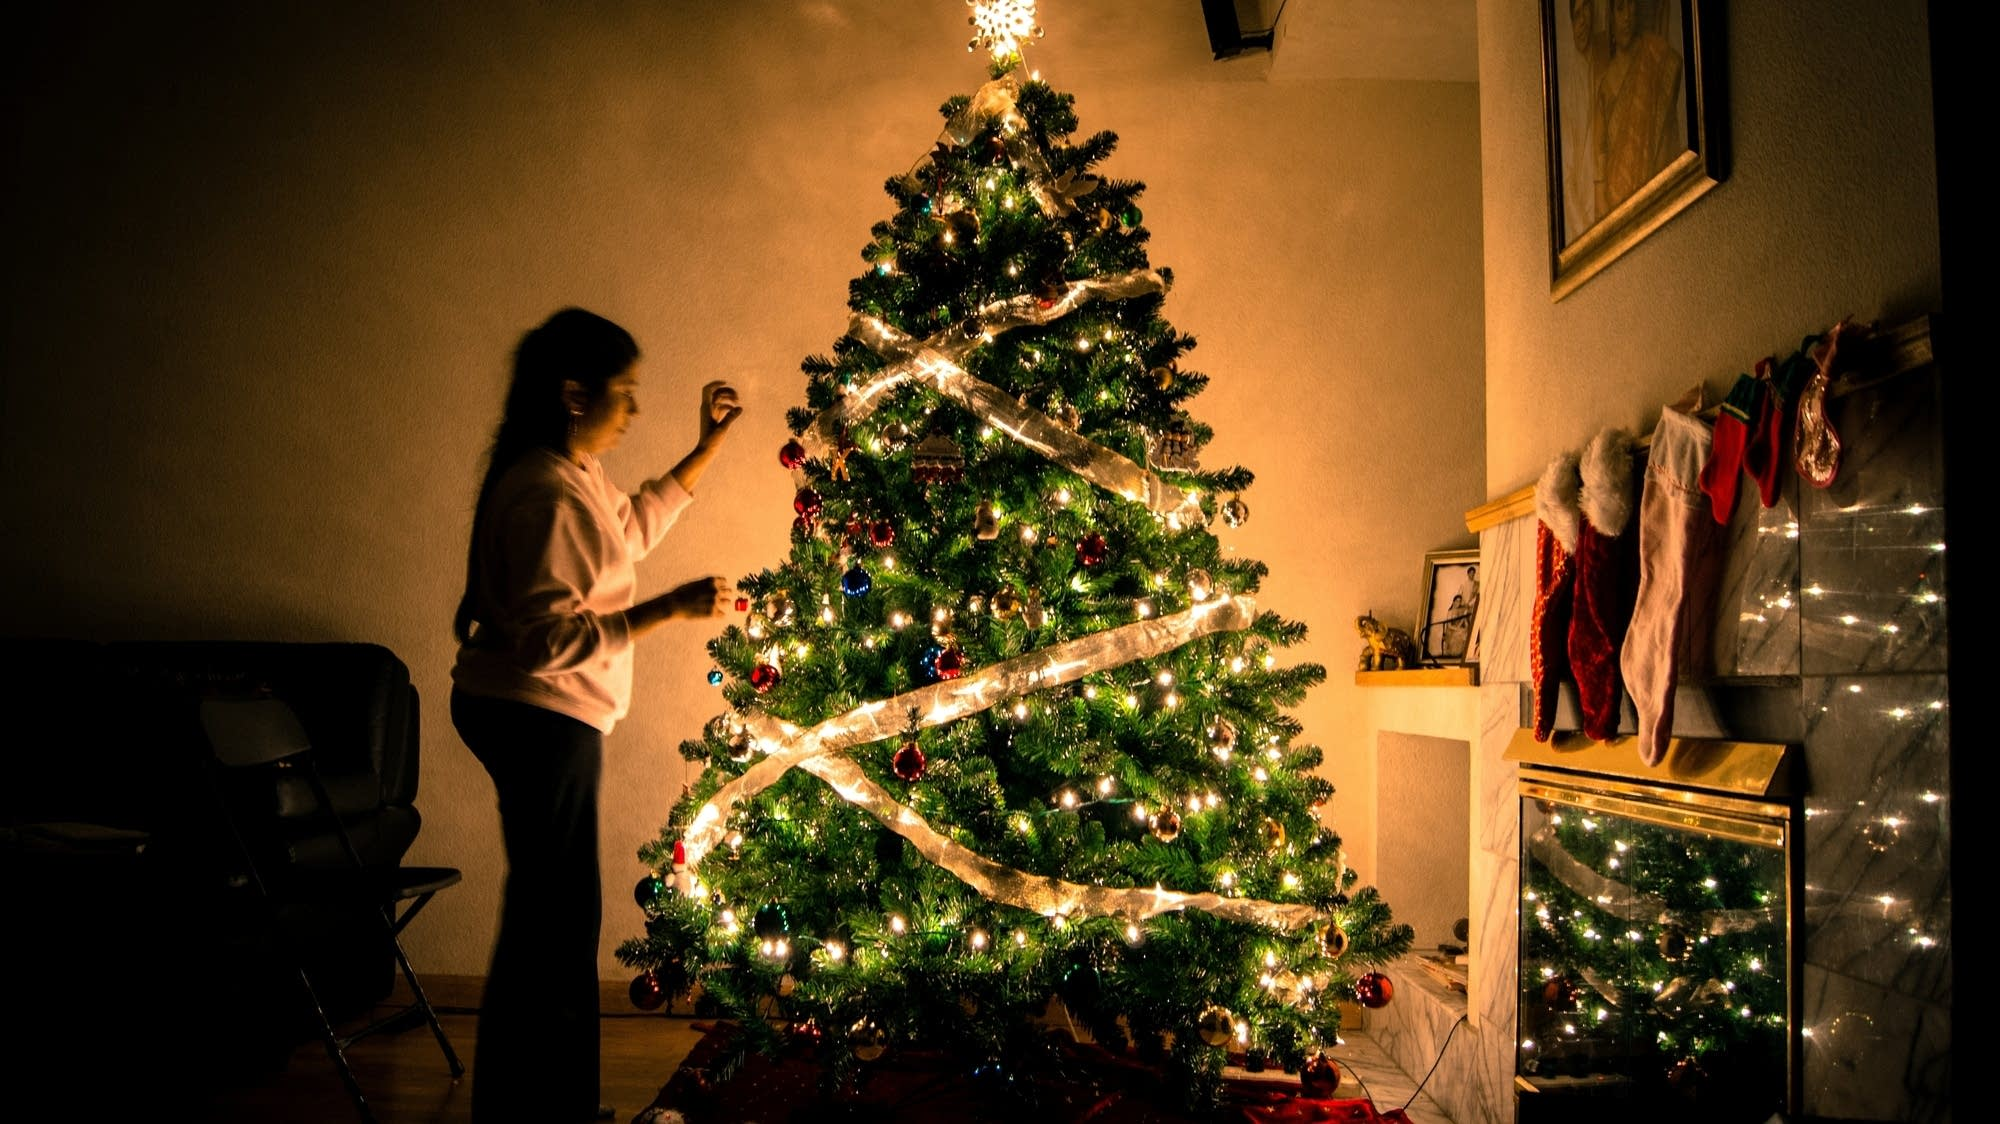 A young girl decorates a Christmas tree.